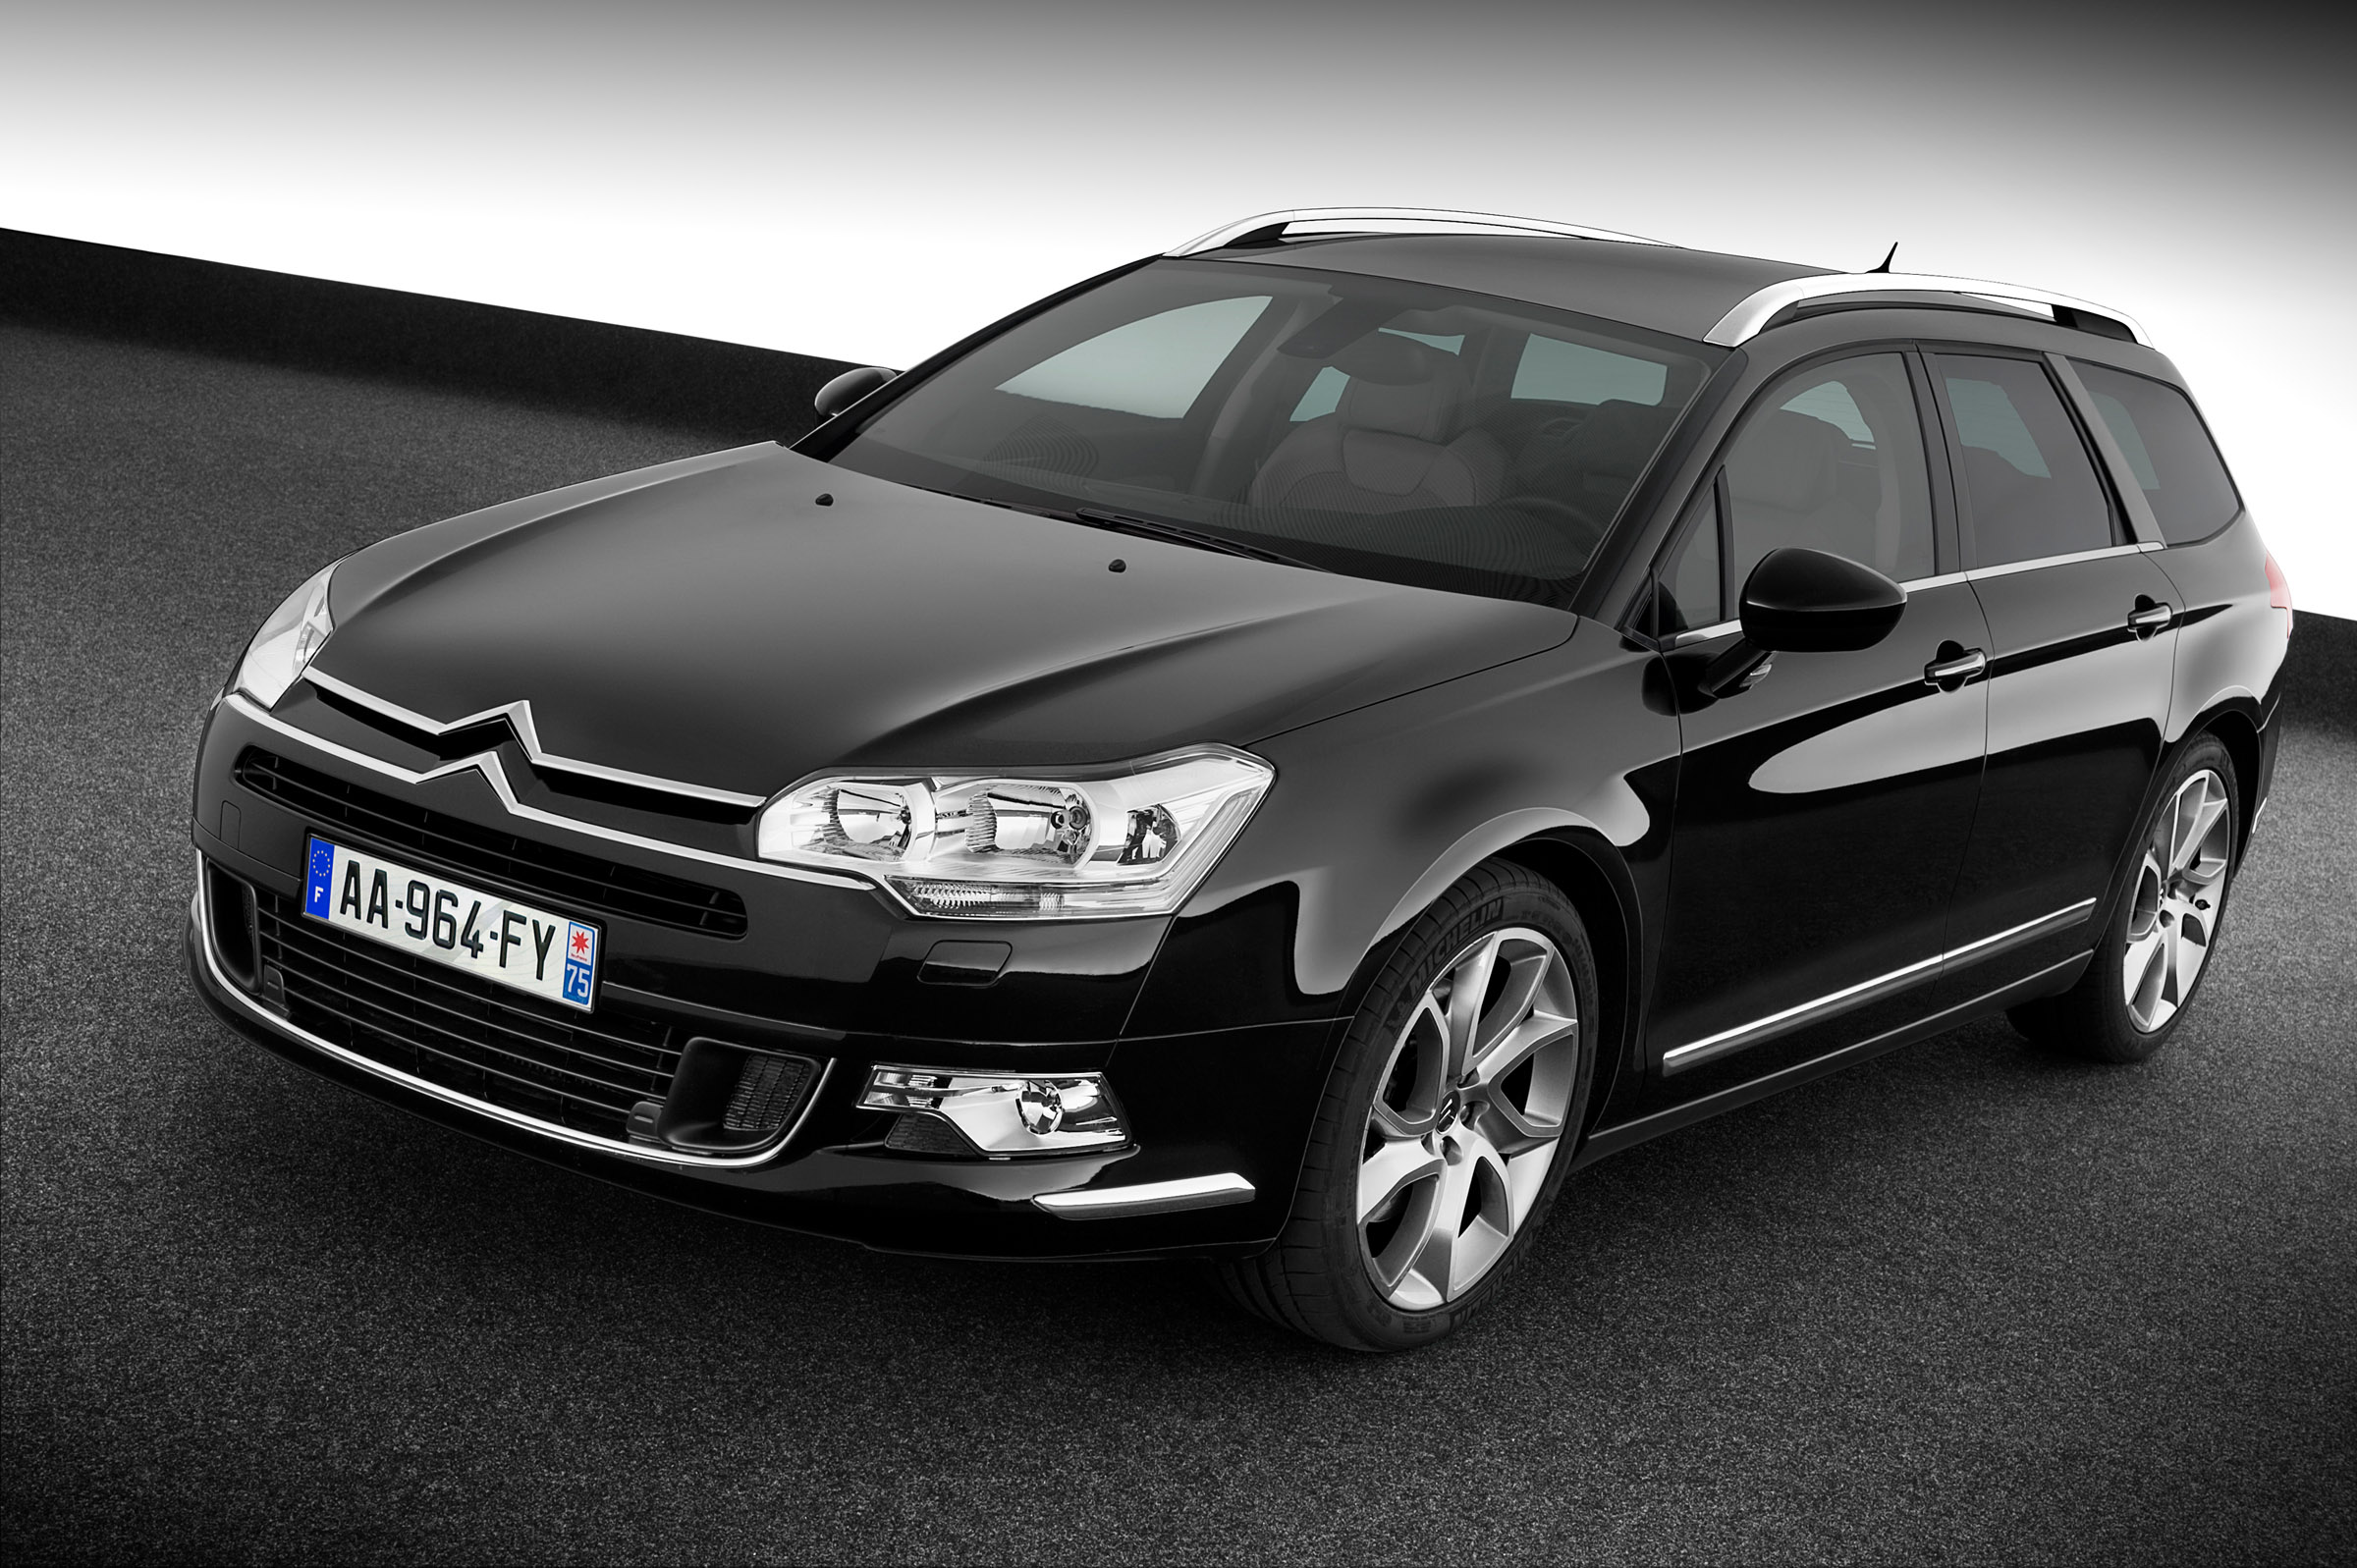 new evolved v6 diesel engine for the citroen c5 and c6. Black Bedroom Furniture Sets. Home Design Ideas